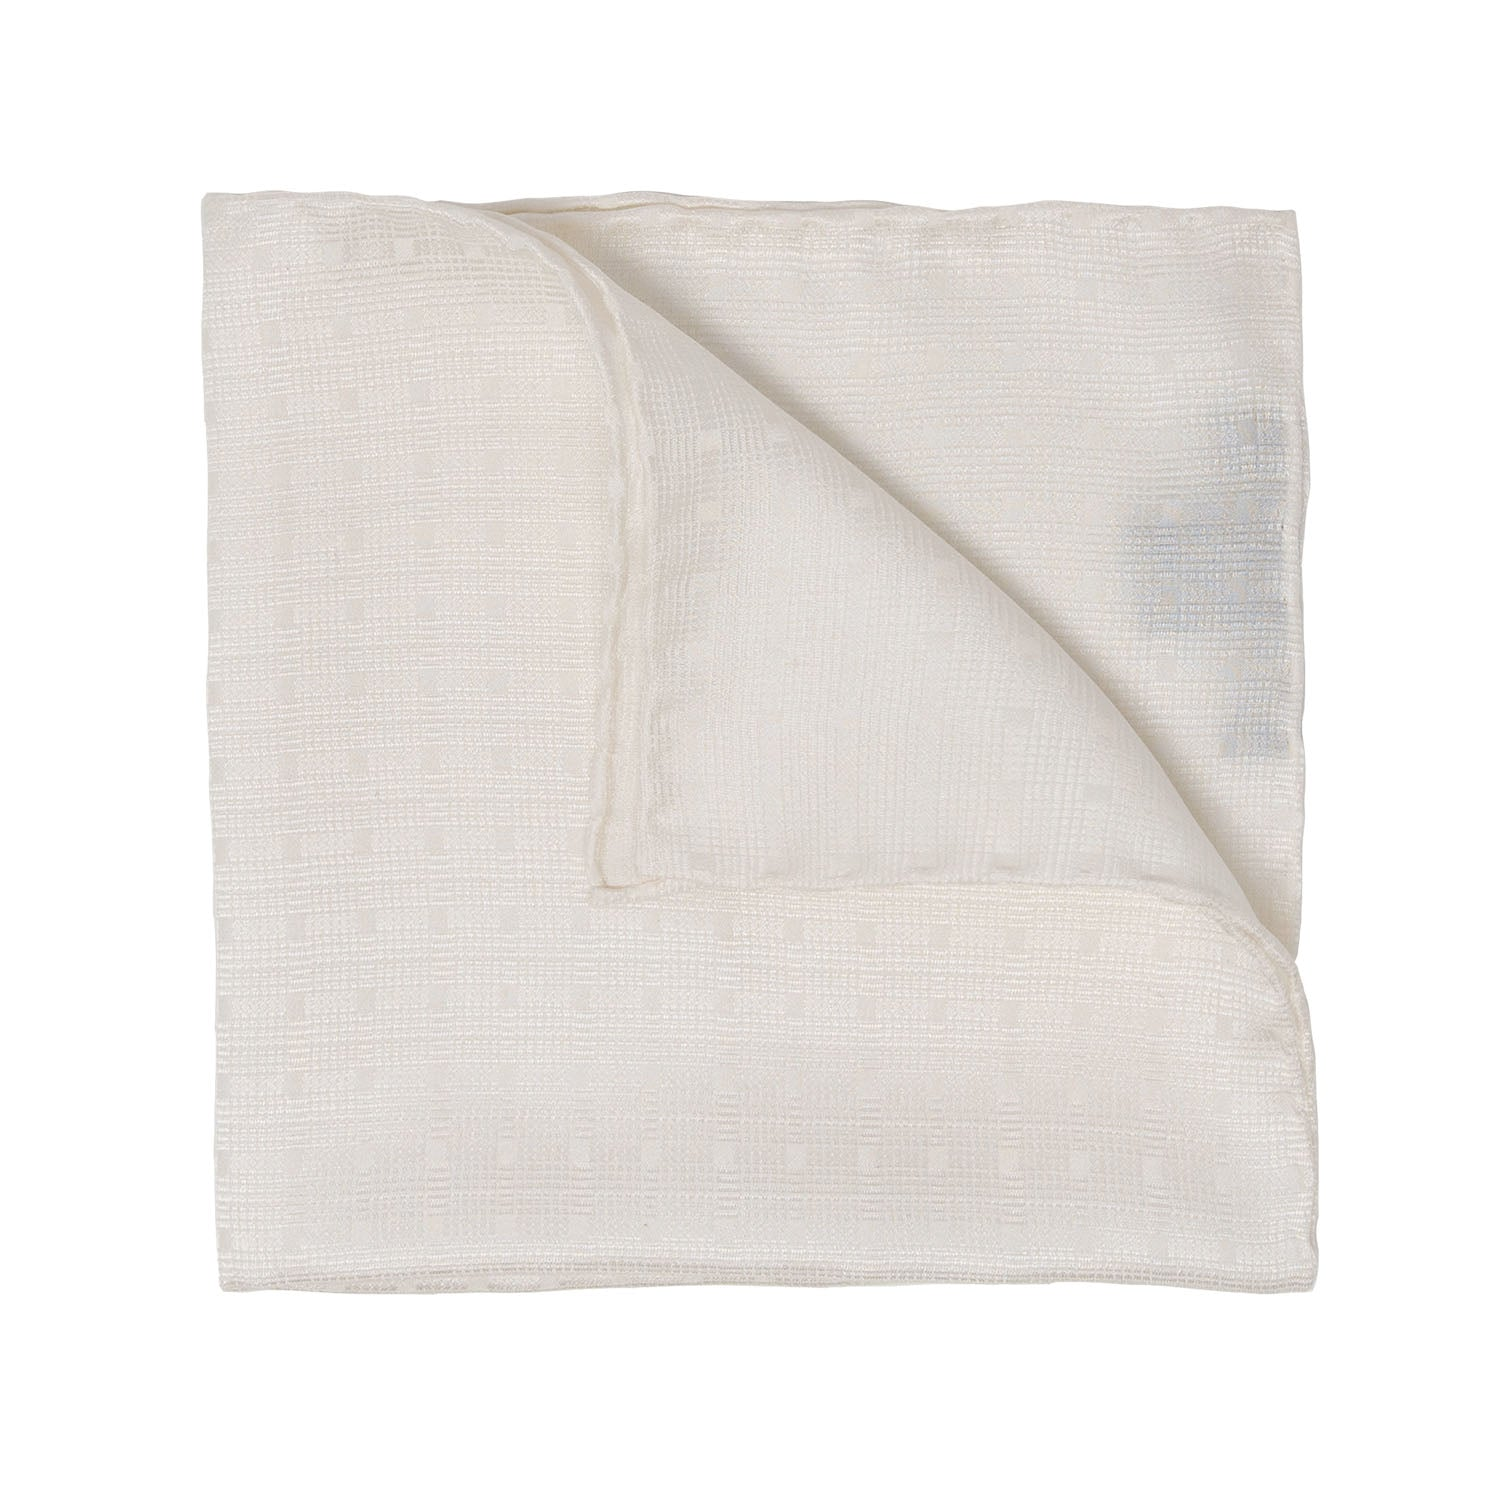 serà fine silk - White Textured Silk Pocket Square